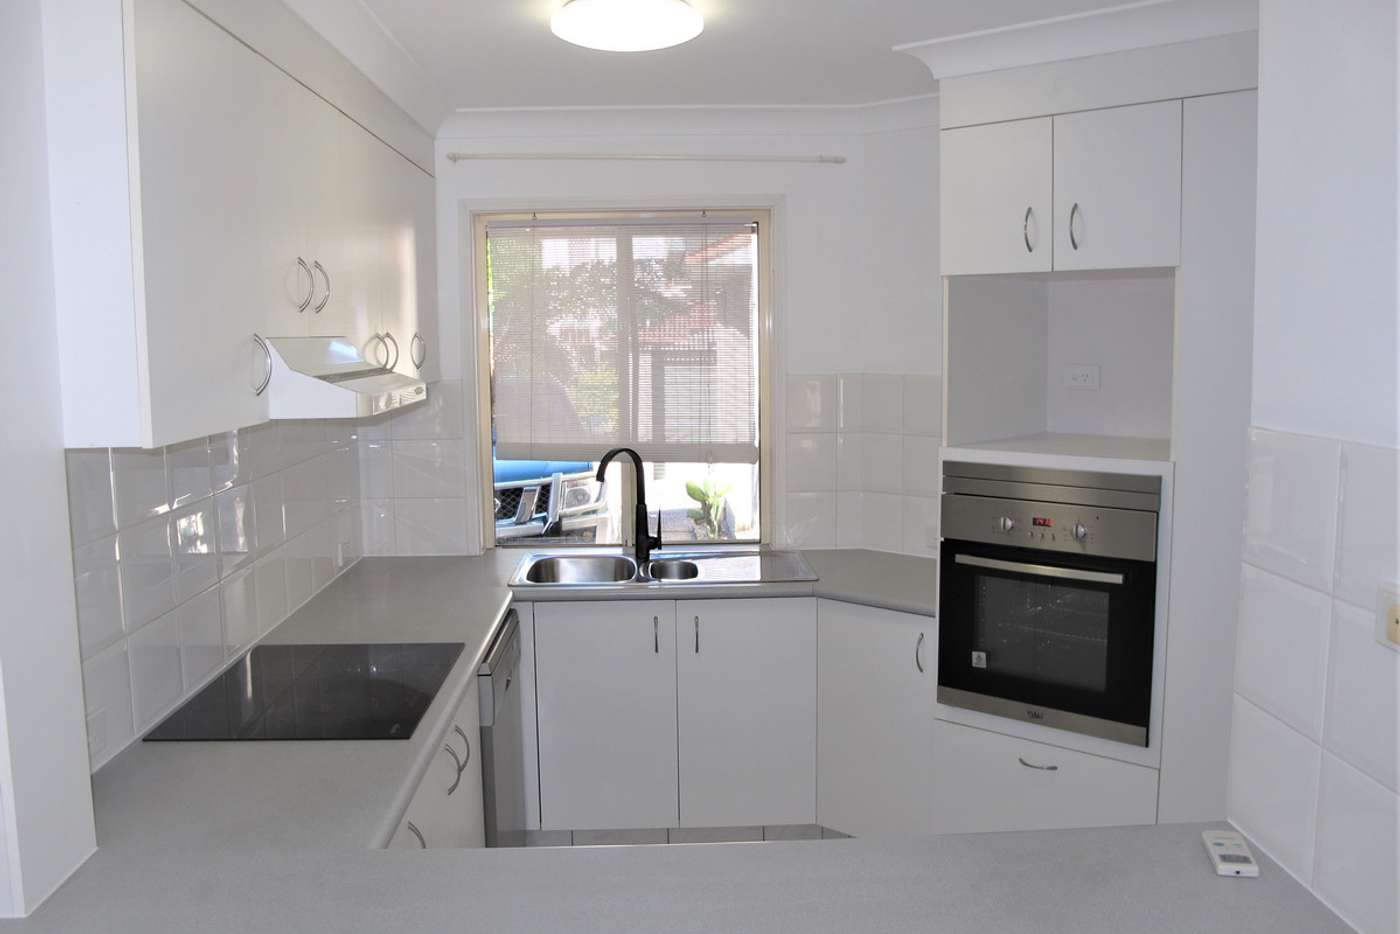 Main view of Homely townhouse listing, 6/37 Ward Street, Southport QLD 4215